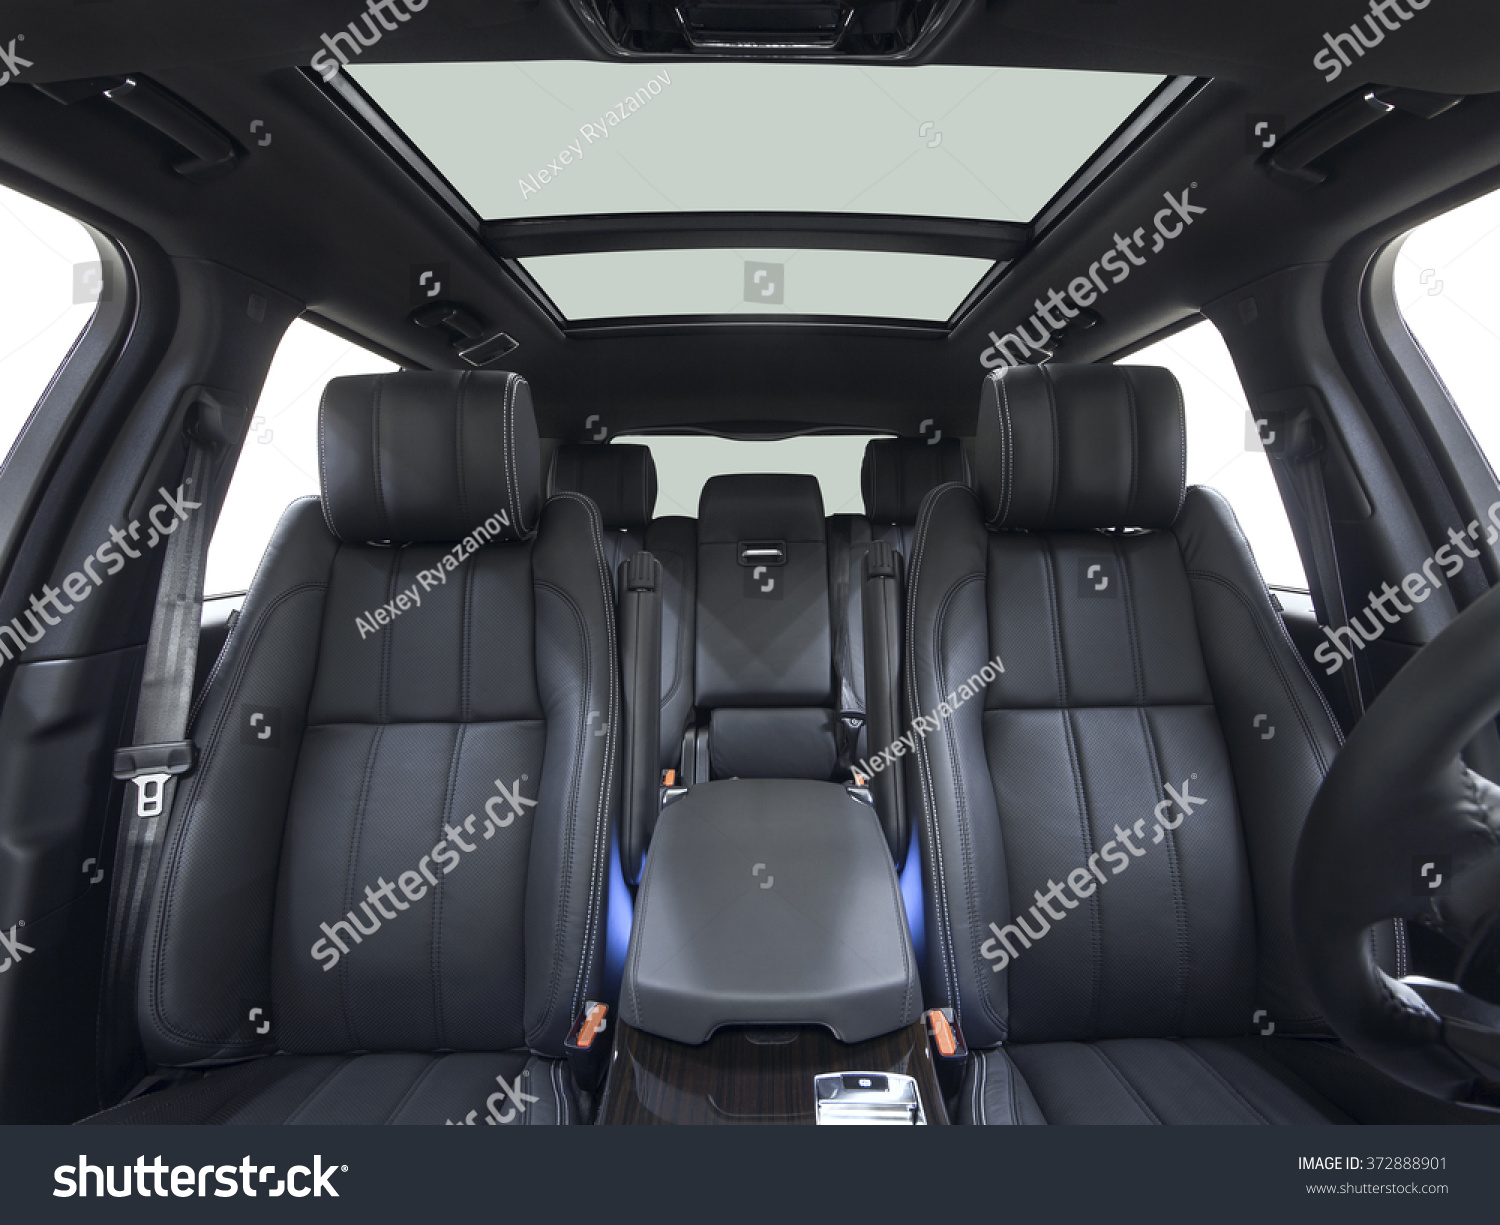 car inside interior prestige modern car stock photo 372888901 shutterstock. Black Bedroom Furniture Sets. Home Design Ideas